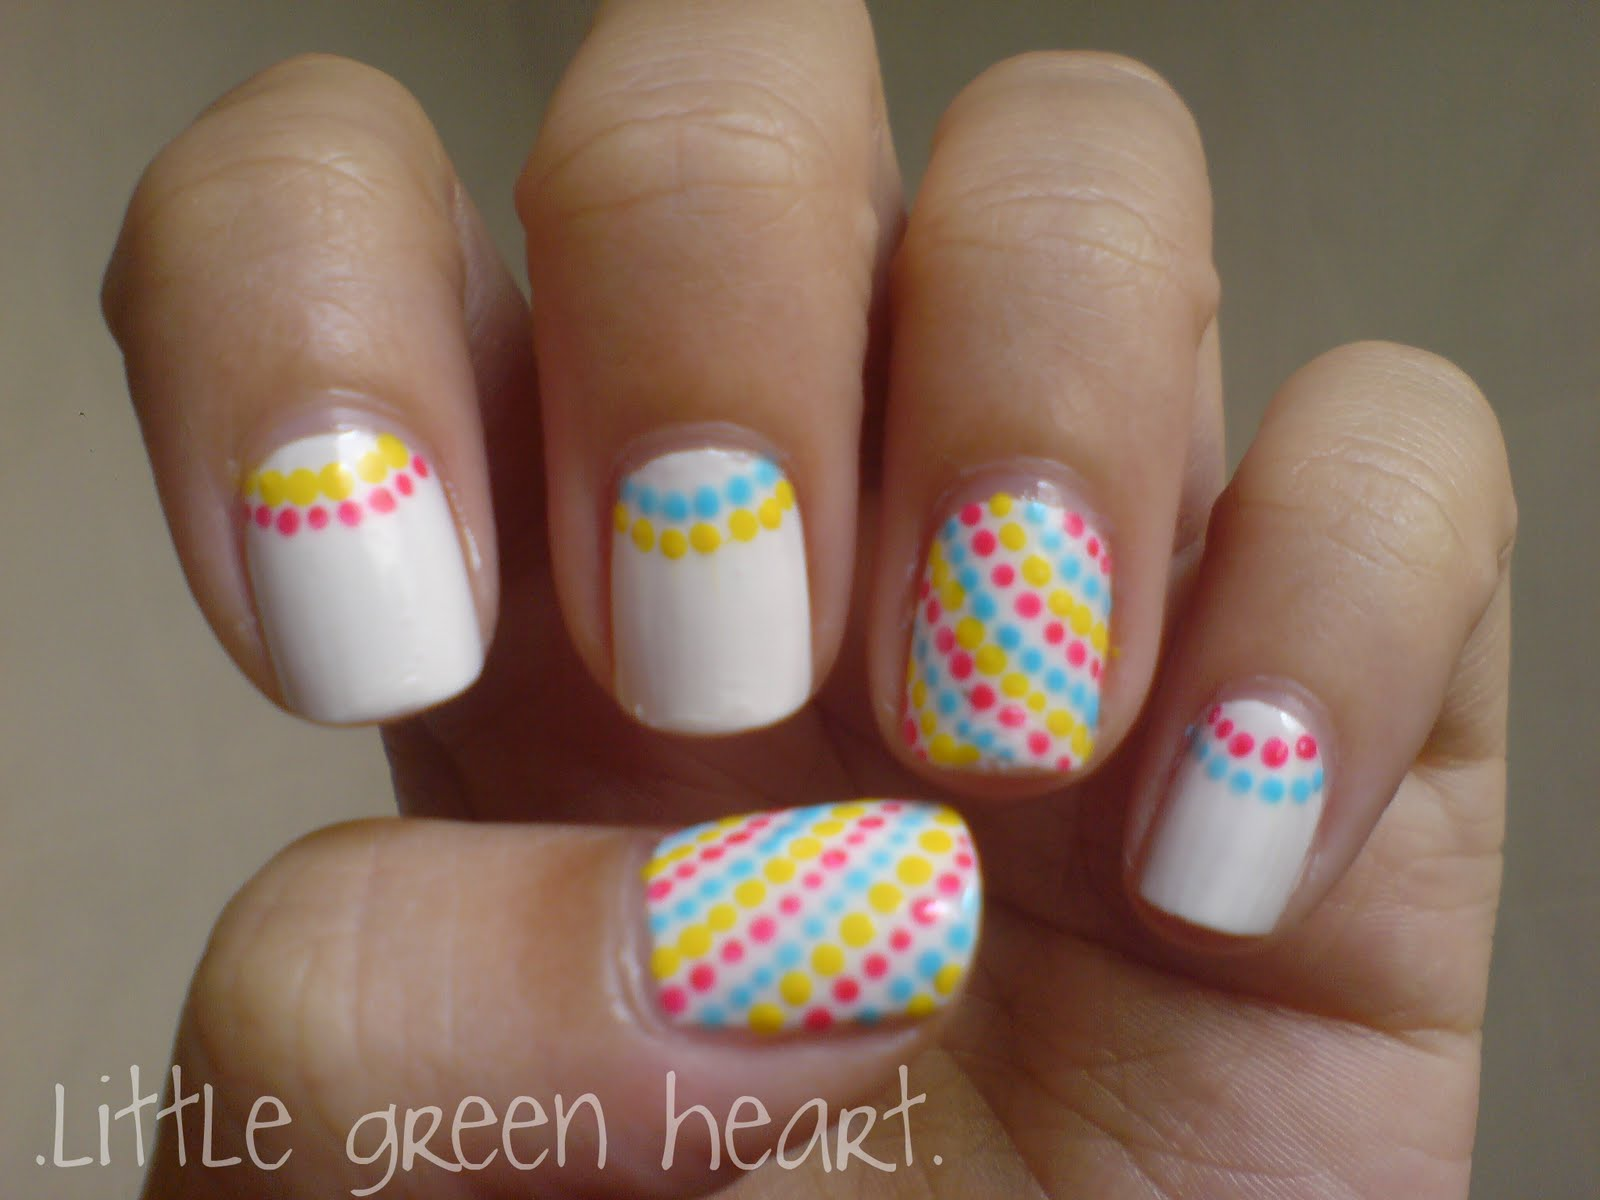 Quick and easy nail art for short nails nail art ideas quick easy and cute nail designs art ideas nail designs for short nails prinsesfo Choice Image